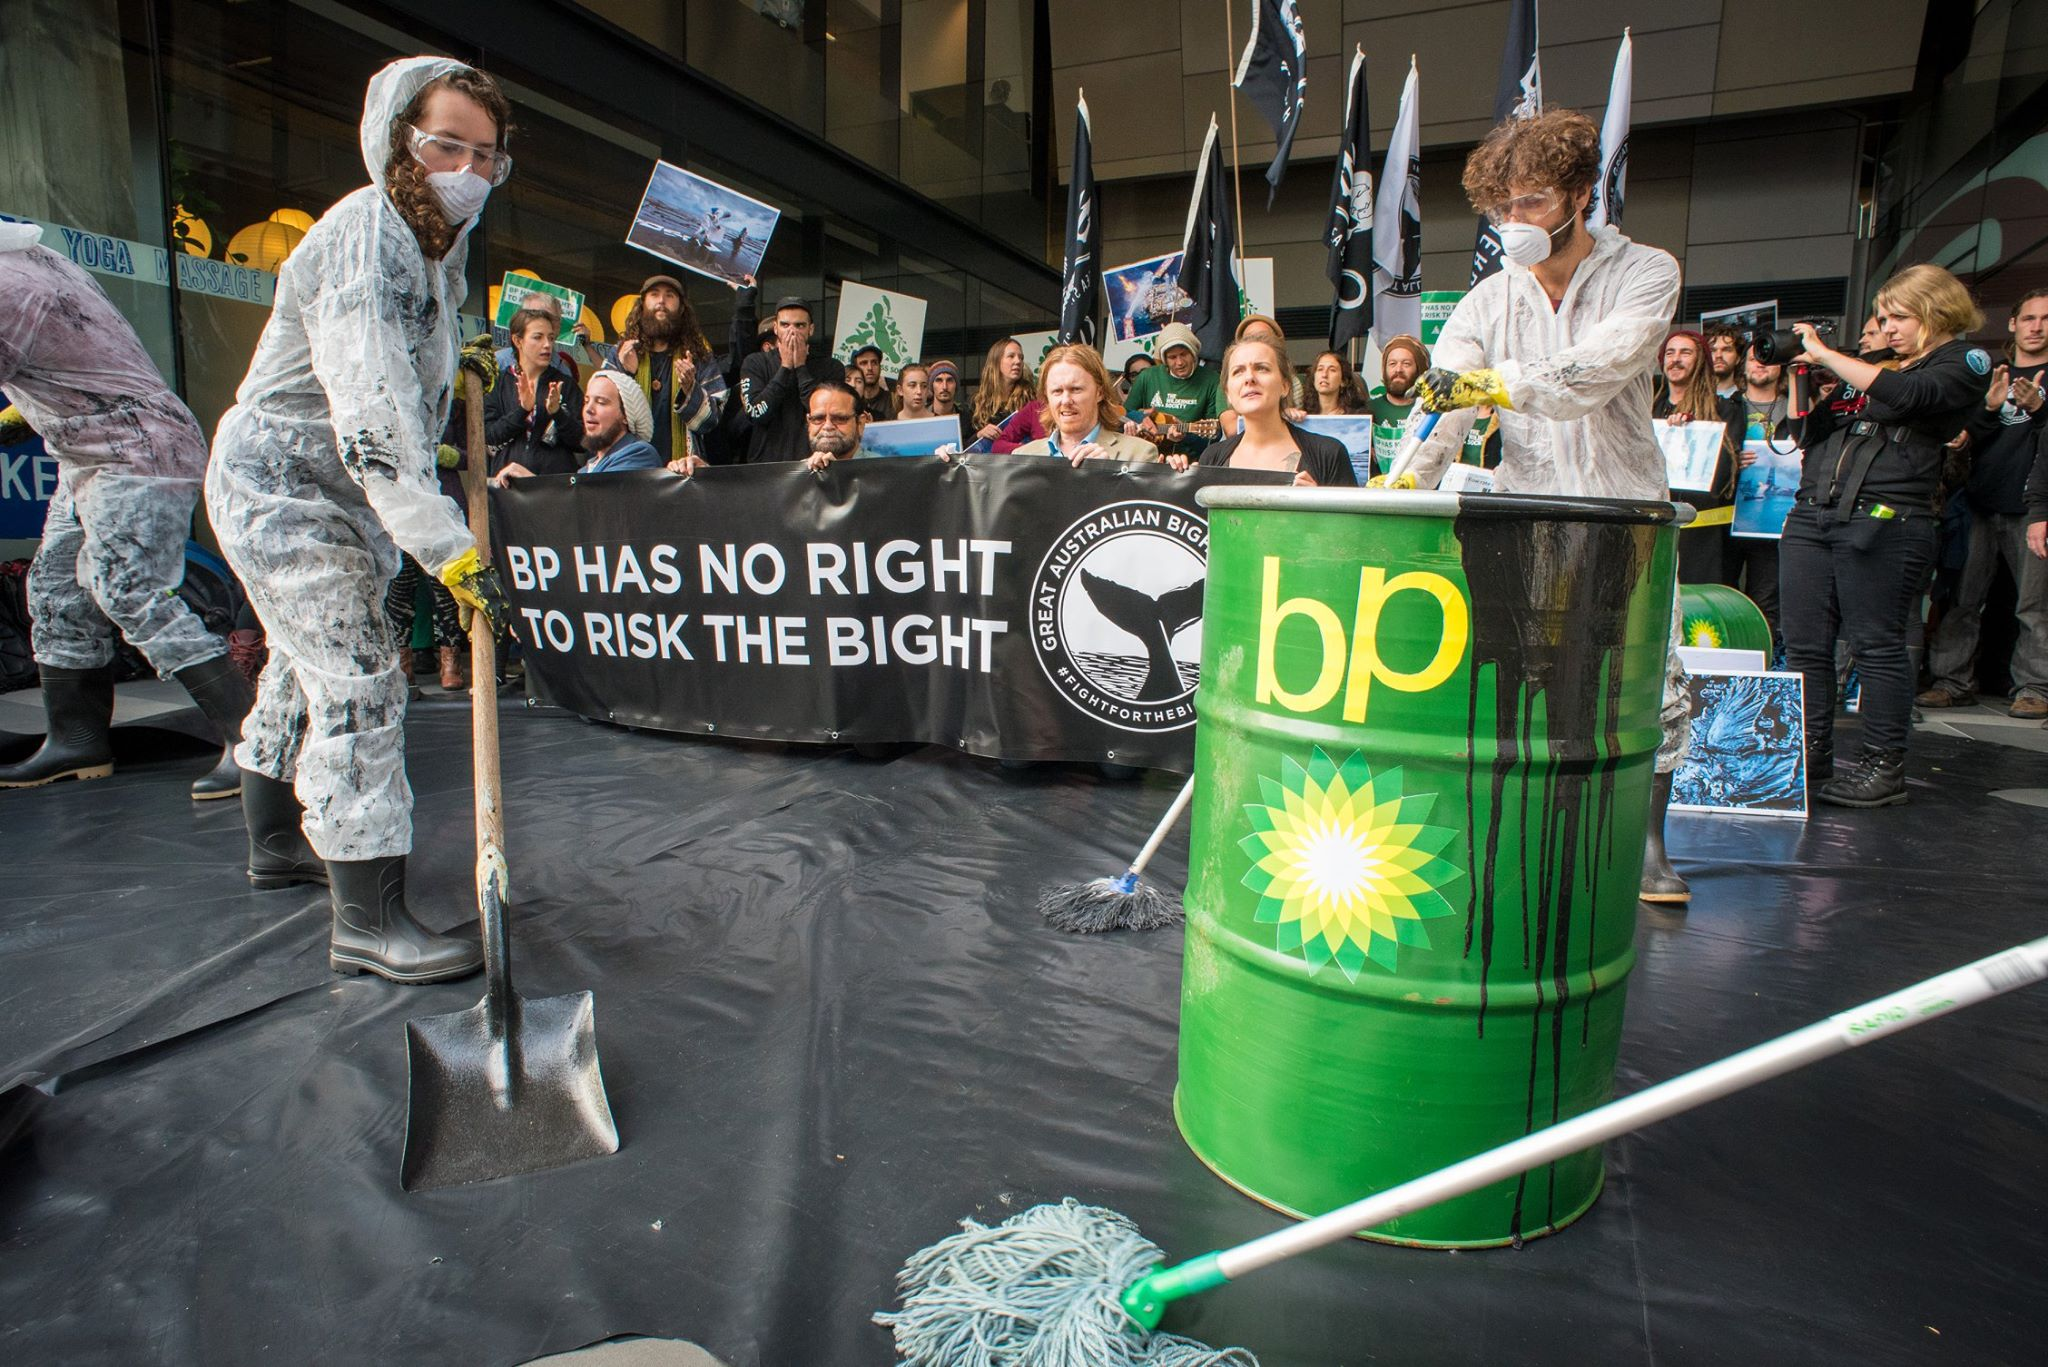 Expanding the reach of the environmental advocacy movement in Australia